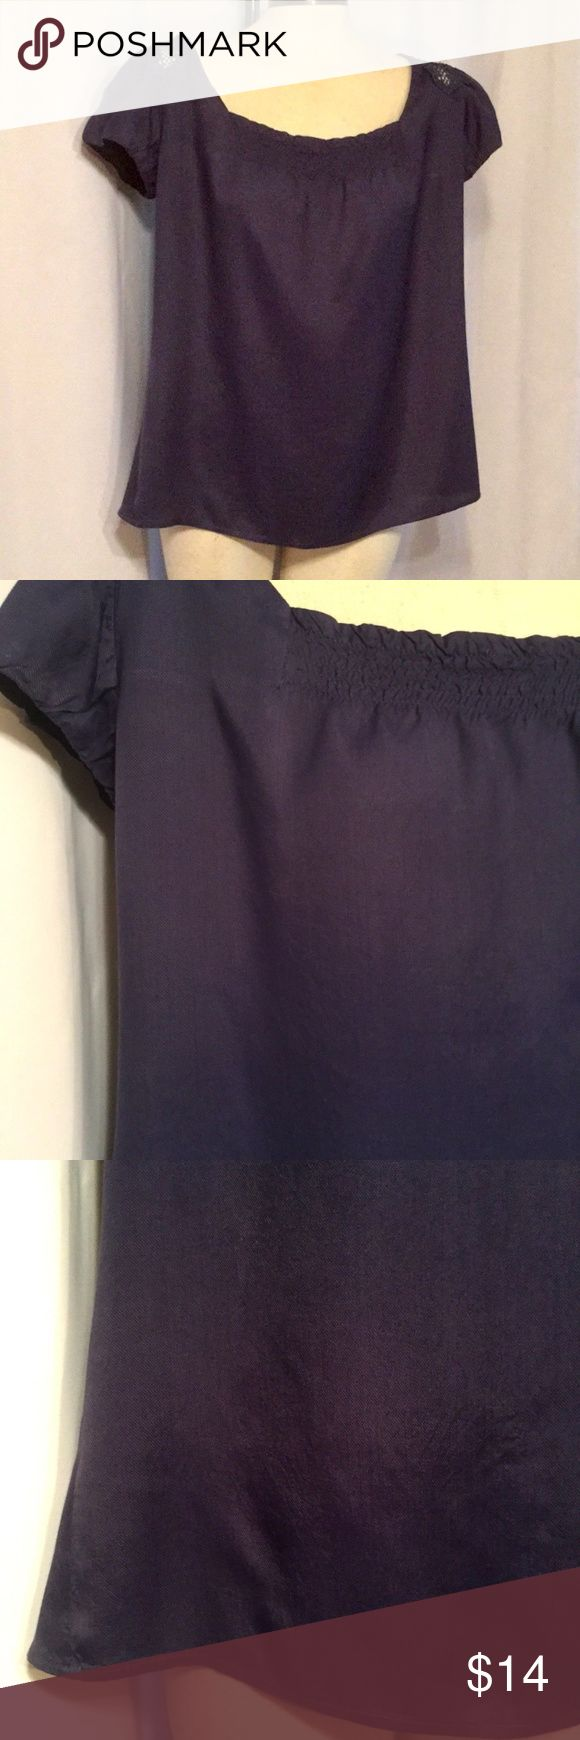 """ODILLE Anthropolgie Navy Blue Peasant Smocked Top ODILLE ~ Anthropologie  Pre-owned ~ Excellent Condition!  SIZE: 8  COLOR: Navy Blue  MATERIAL: 100% Rayon  BUST: Pit-to-Pit – 23"""" across / 46"""" around  LENGTH: 25""""  CARE: Machine wash / Tumble dry  Item #: 7041 Odille Tops Blouses"""